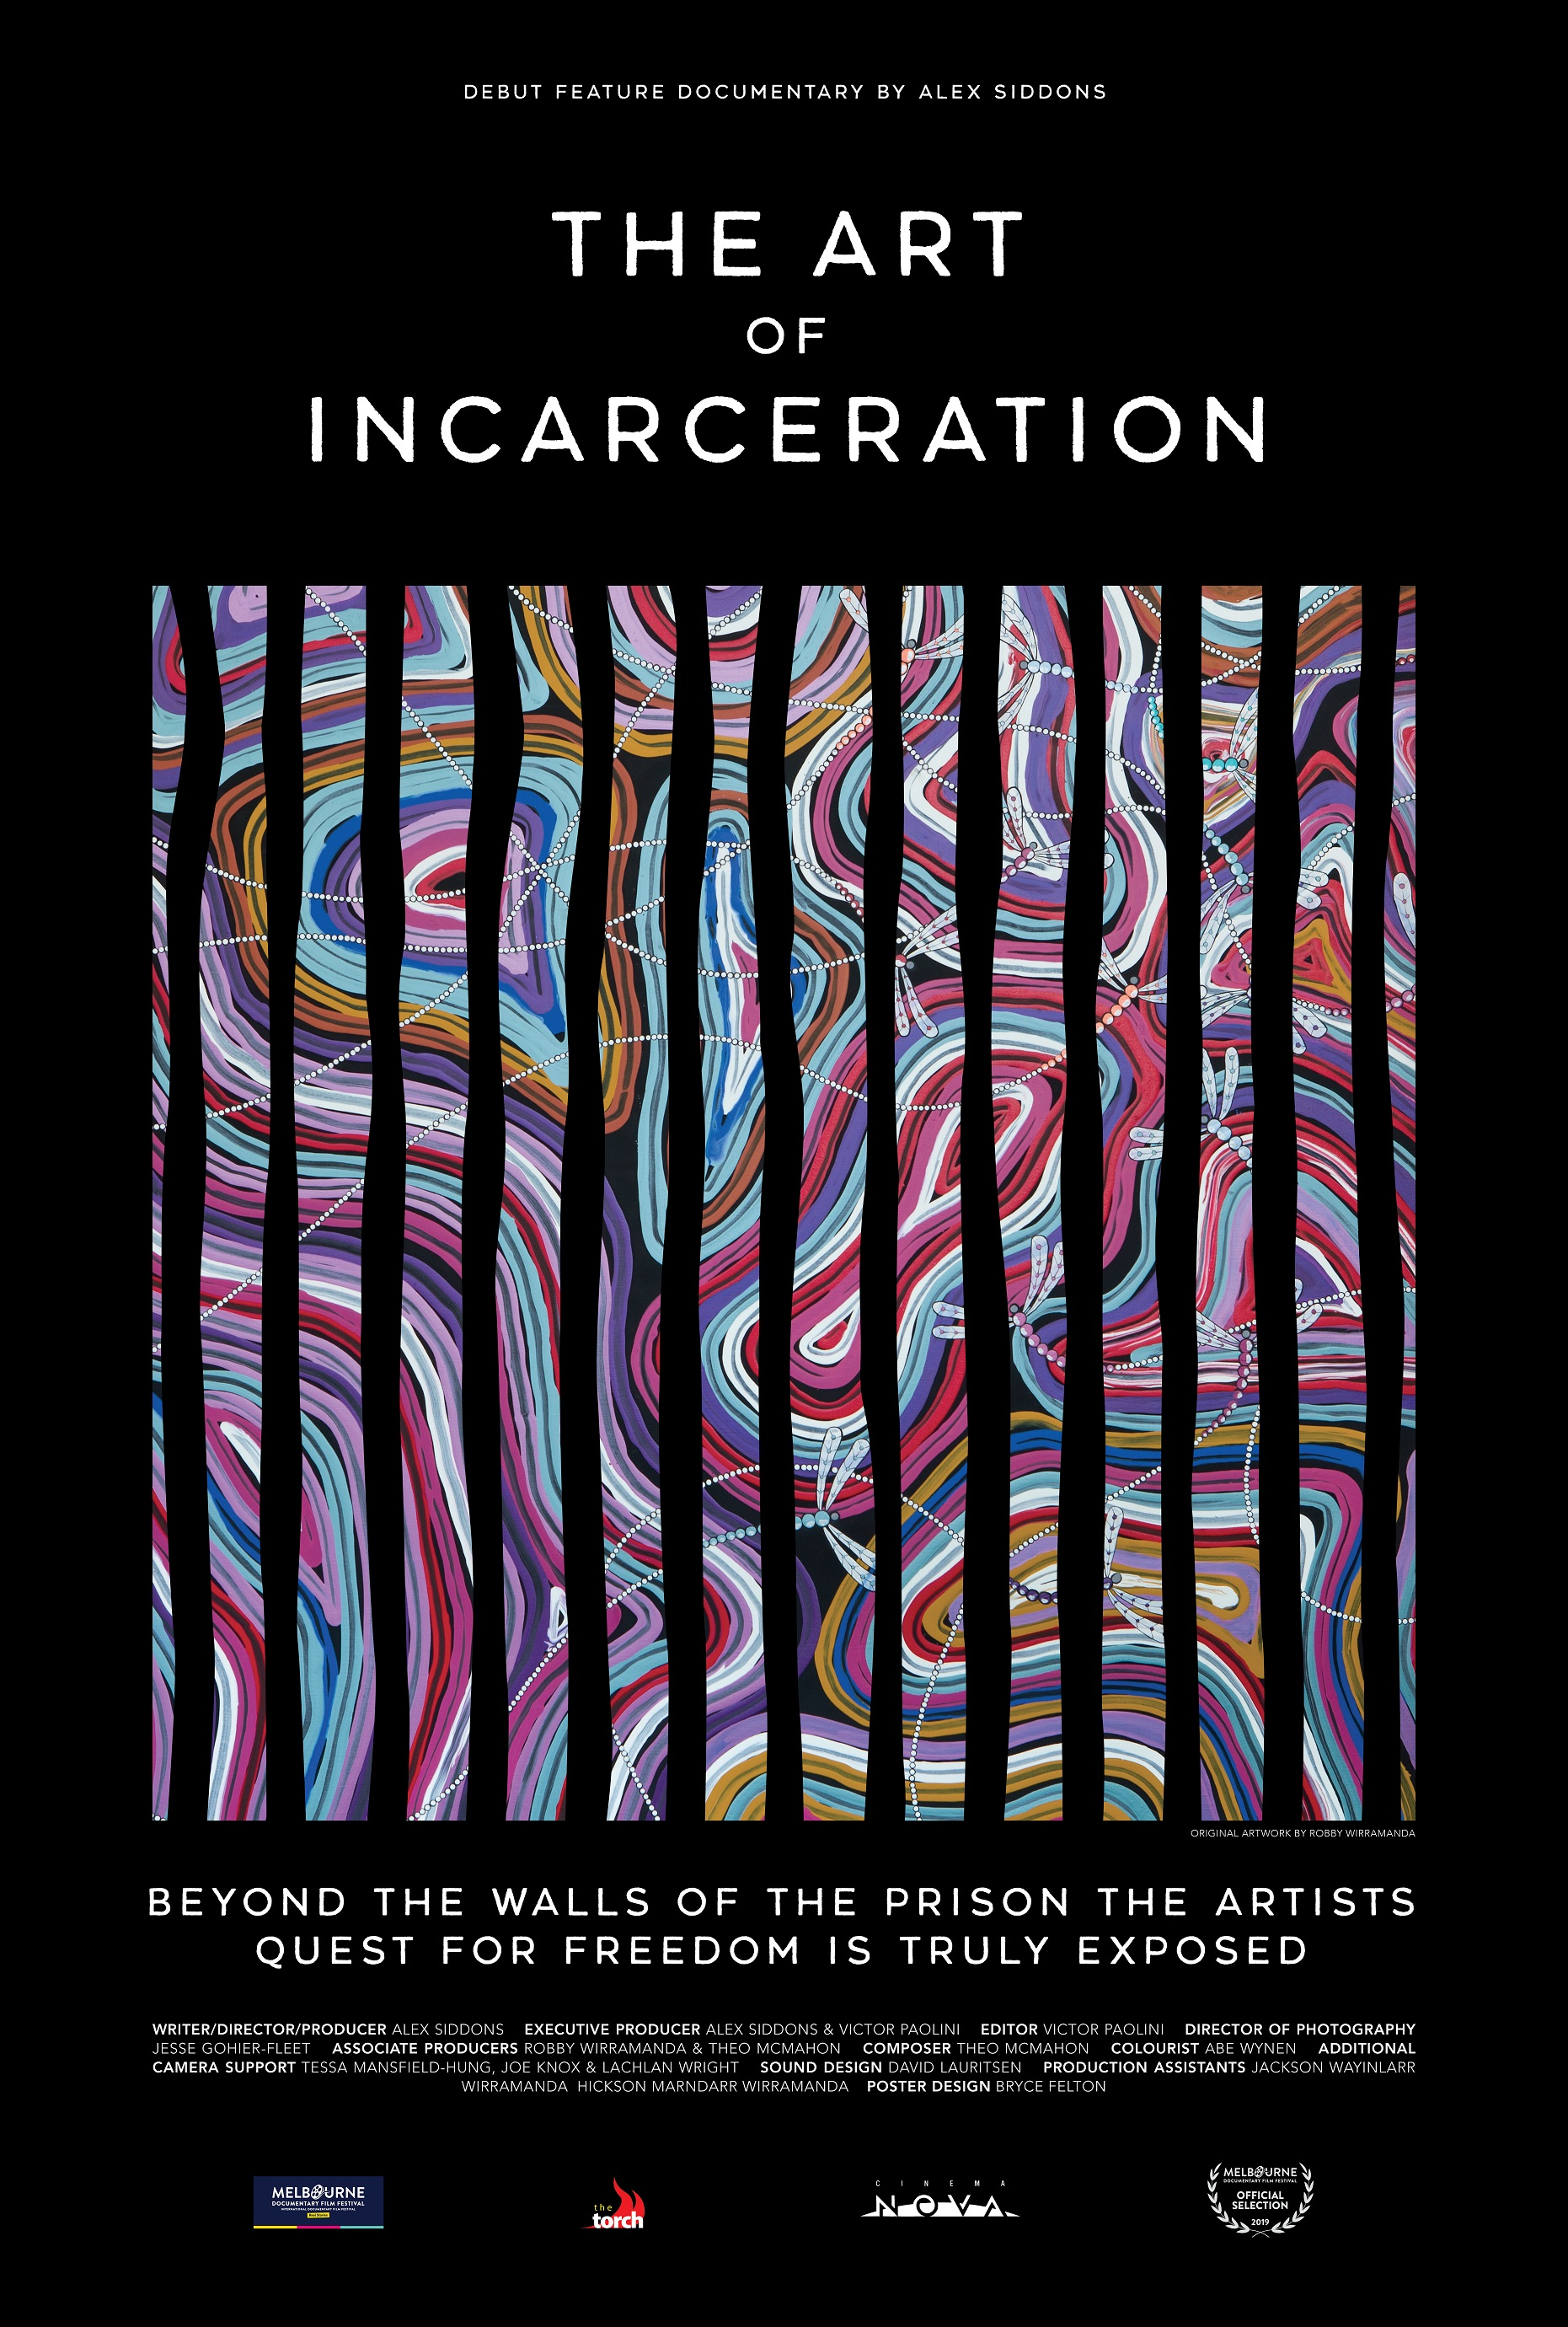 The Art of Incarceration poster